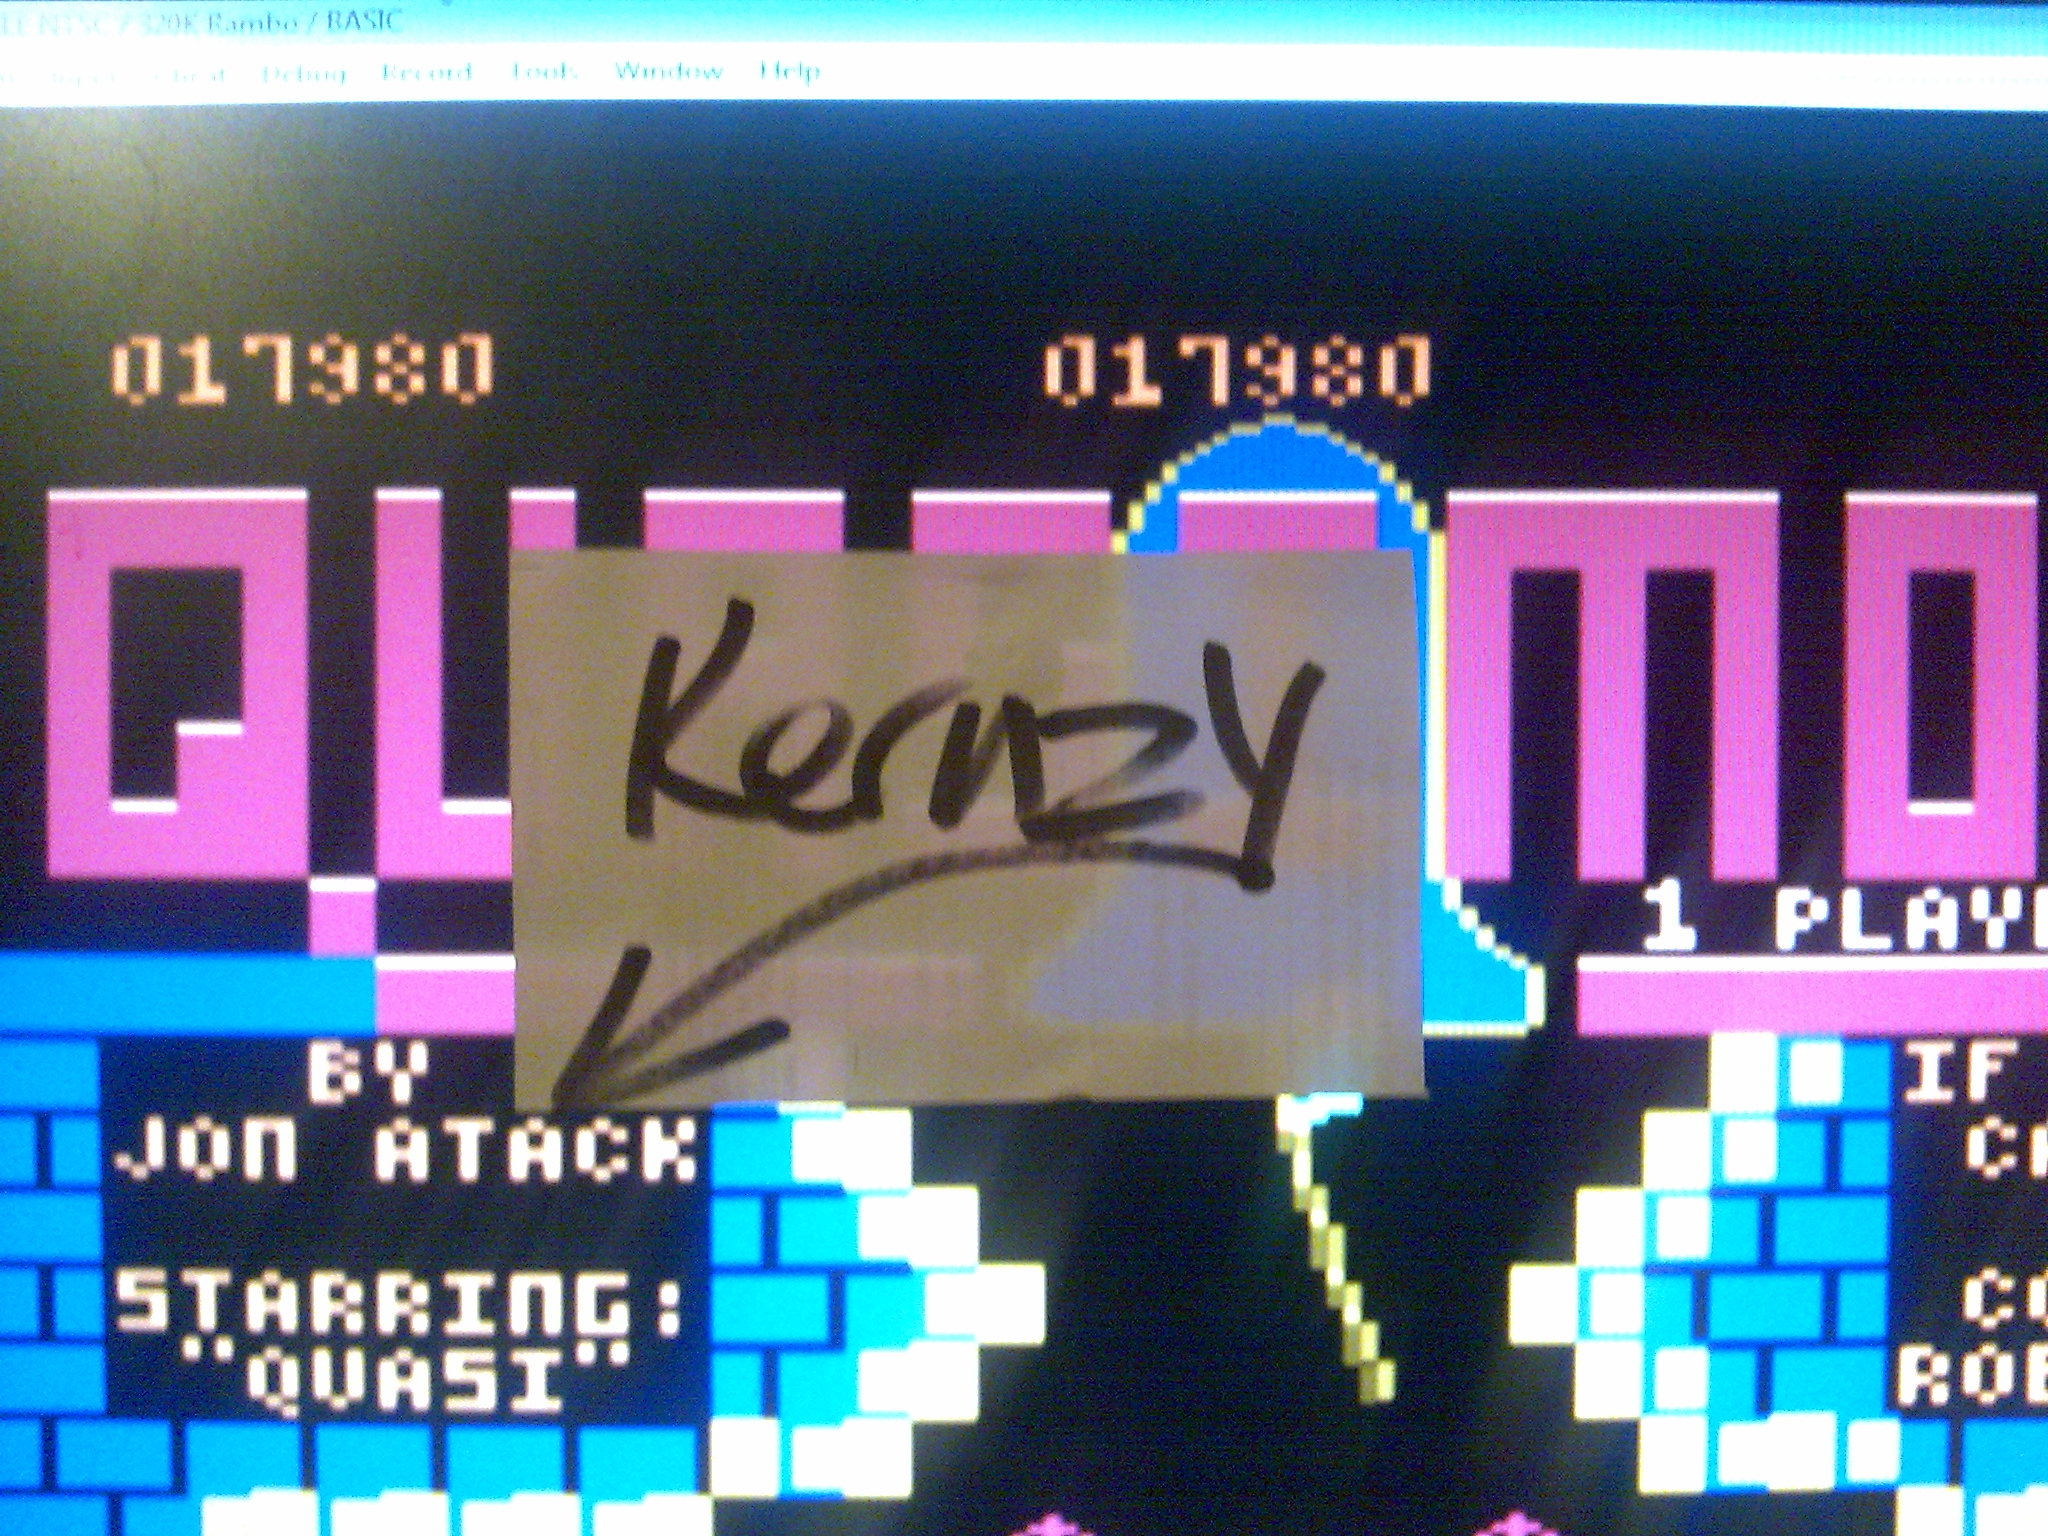 kernzy: Quasimodo (Atari 400/800/XL/XE Emulated) 17,980 points on 2014-10-15 12:08:24